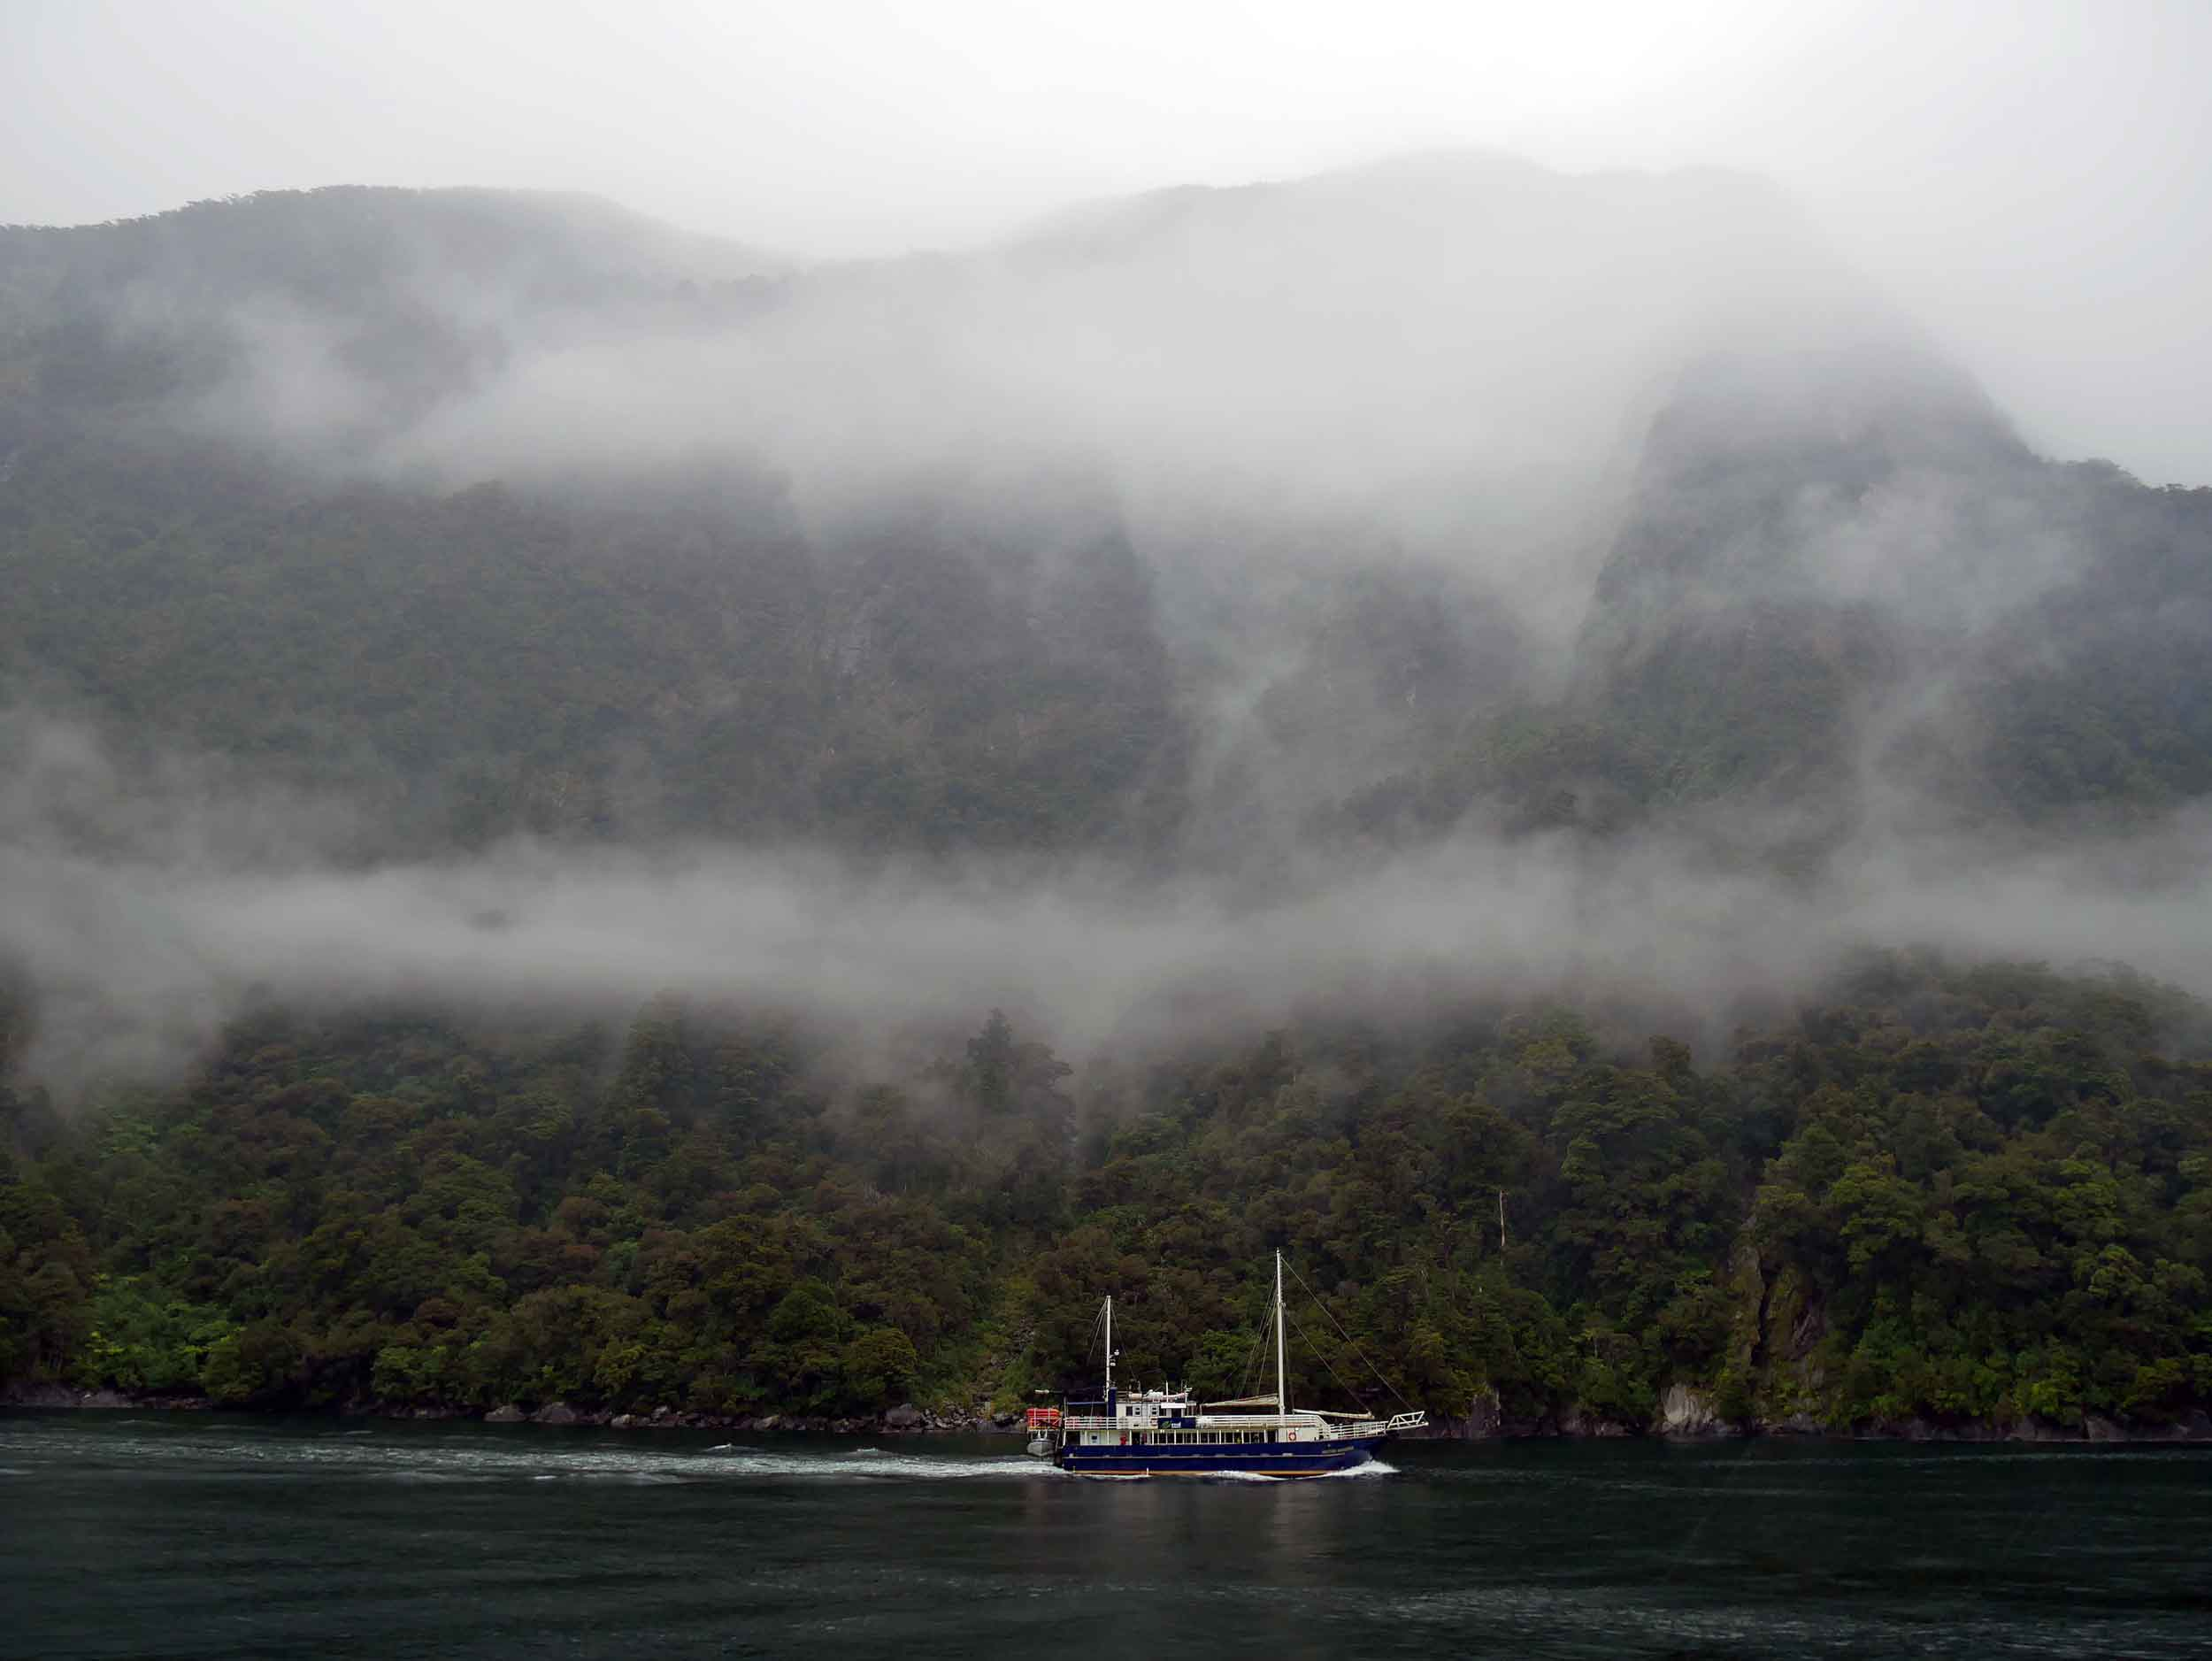 Majestic Milford Sound, the star of Fiordland National Park, was once called the eighth world wonder by Rudyard Kipling (Jan 9).